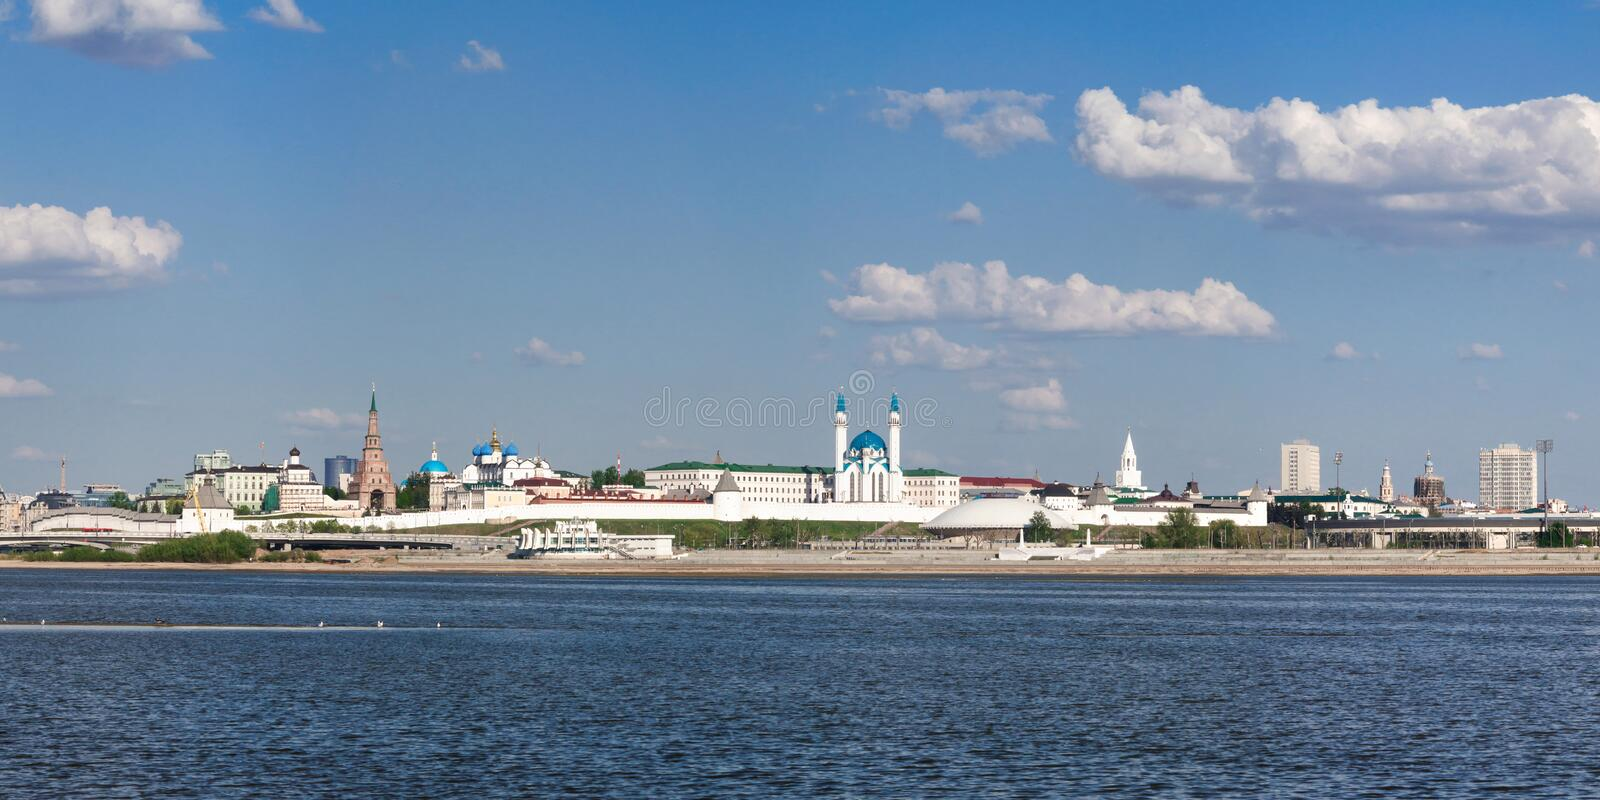 Panoramic view of the Kremlin and the central part of Kazan stock photography